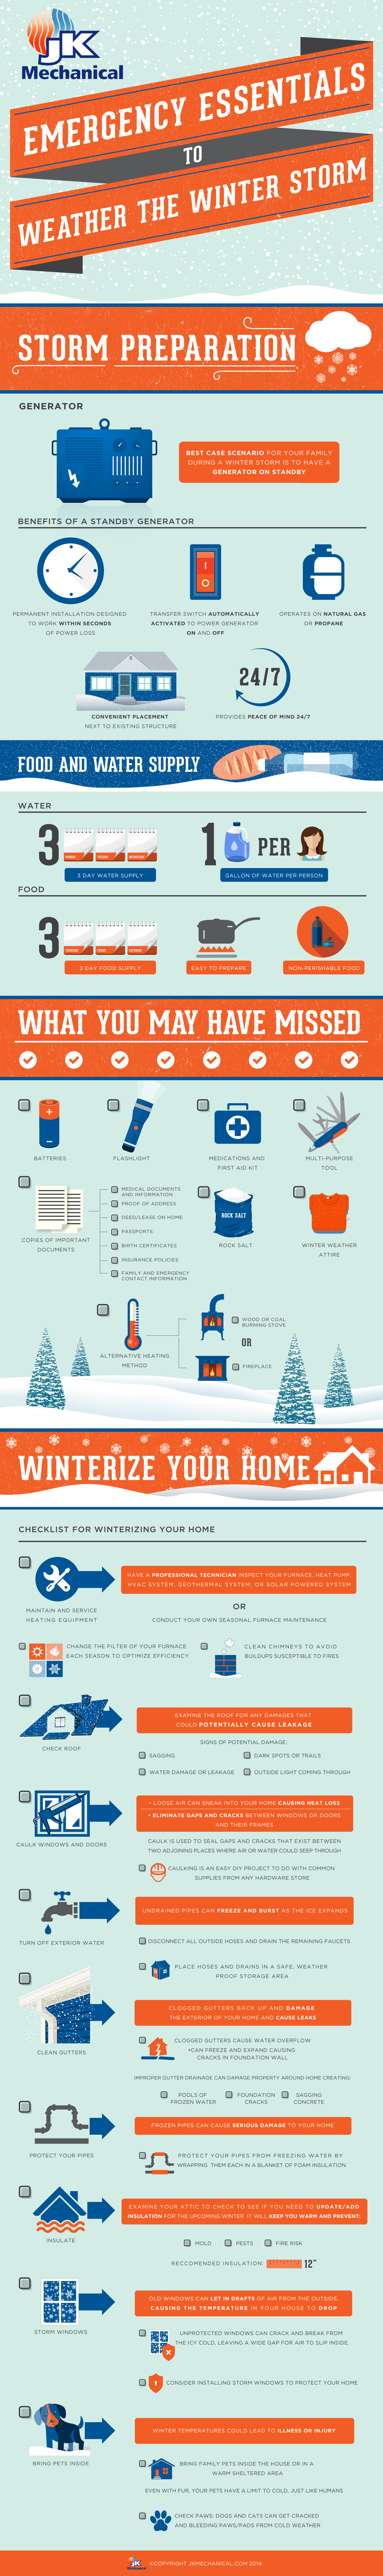 Emergency Essentials to Weather a Winter Storm Infographic